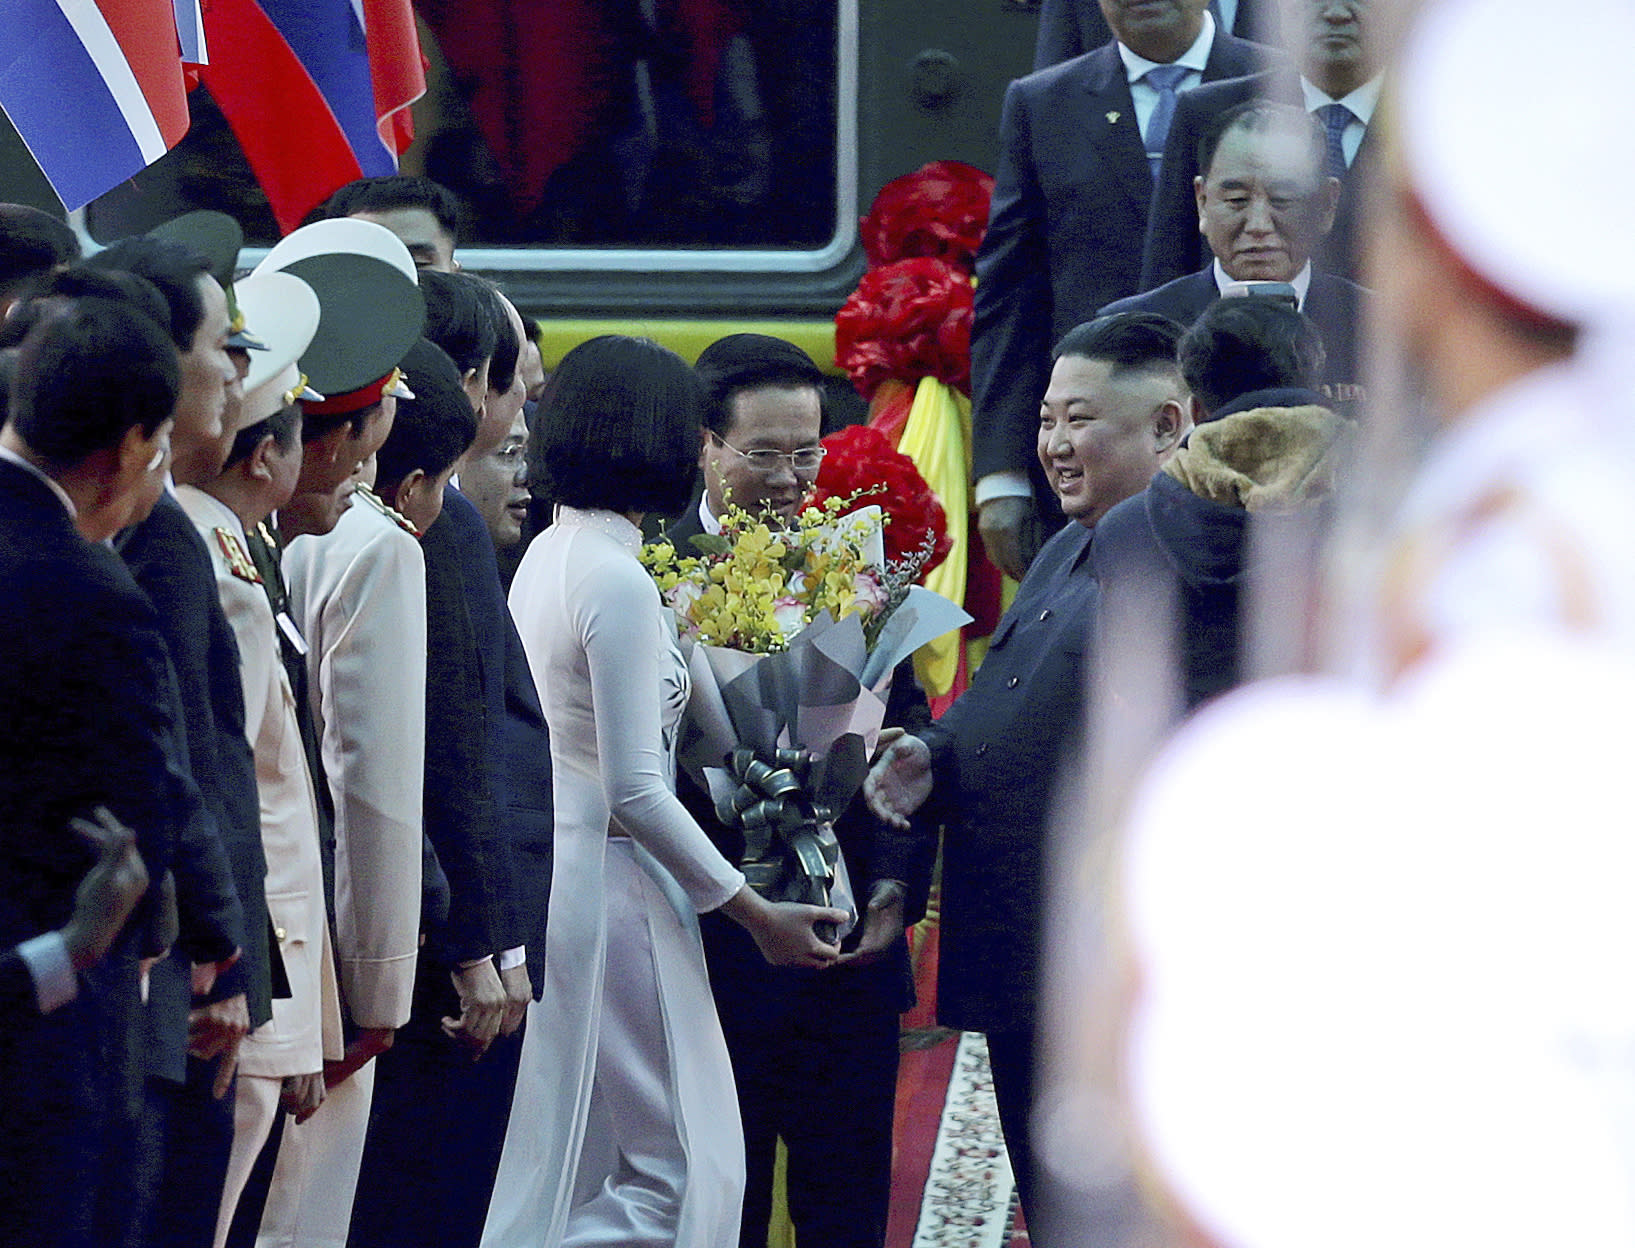 North Korean leader Kim Jong Un, center right, receives a bouquet of flowers upon arrival by train in Dong Dang in Vietnamese border town Tuesday, Feb. 26, 2019, ahead of his second summit with U.S. President Donald Trump. (AP Photo/Minh Hoang)